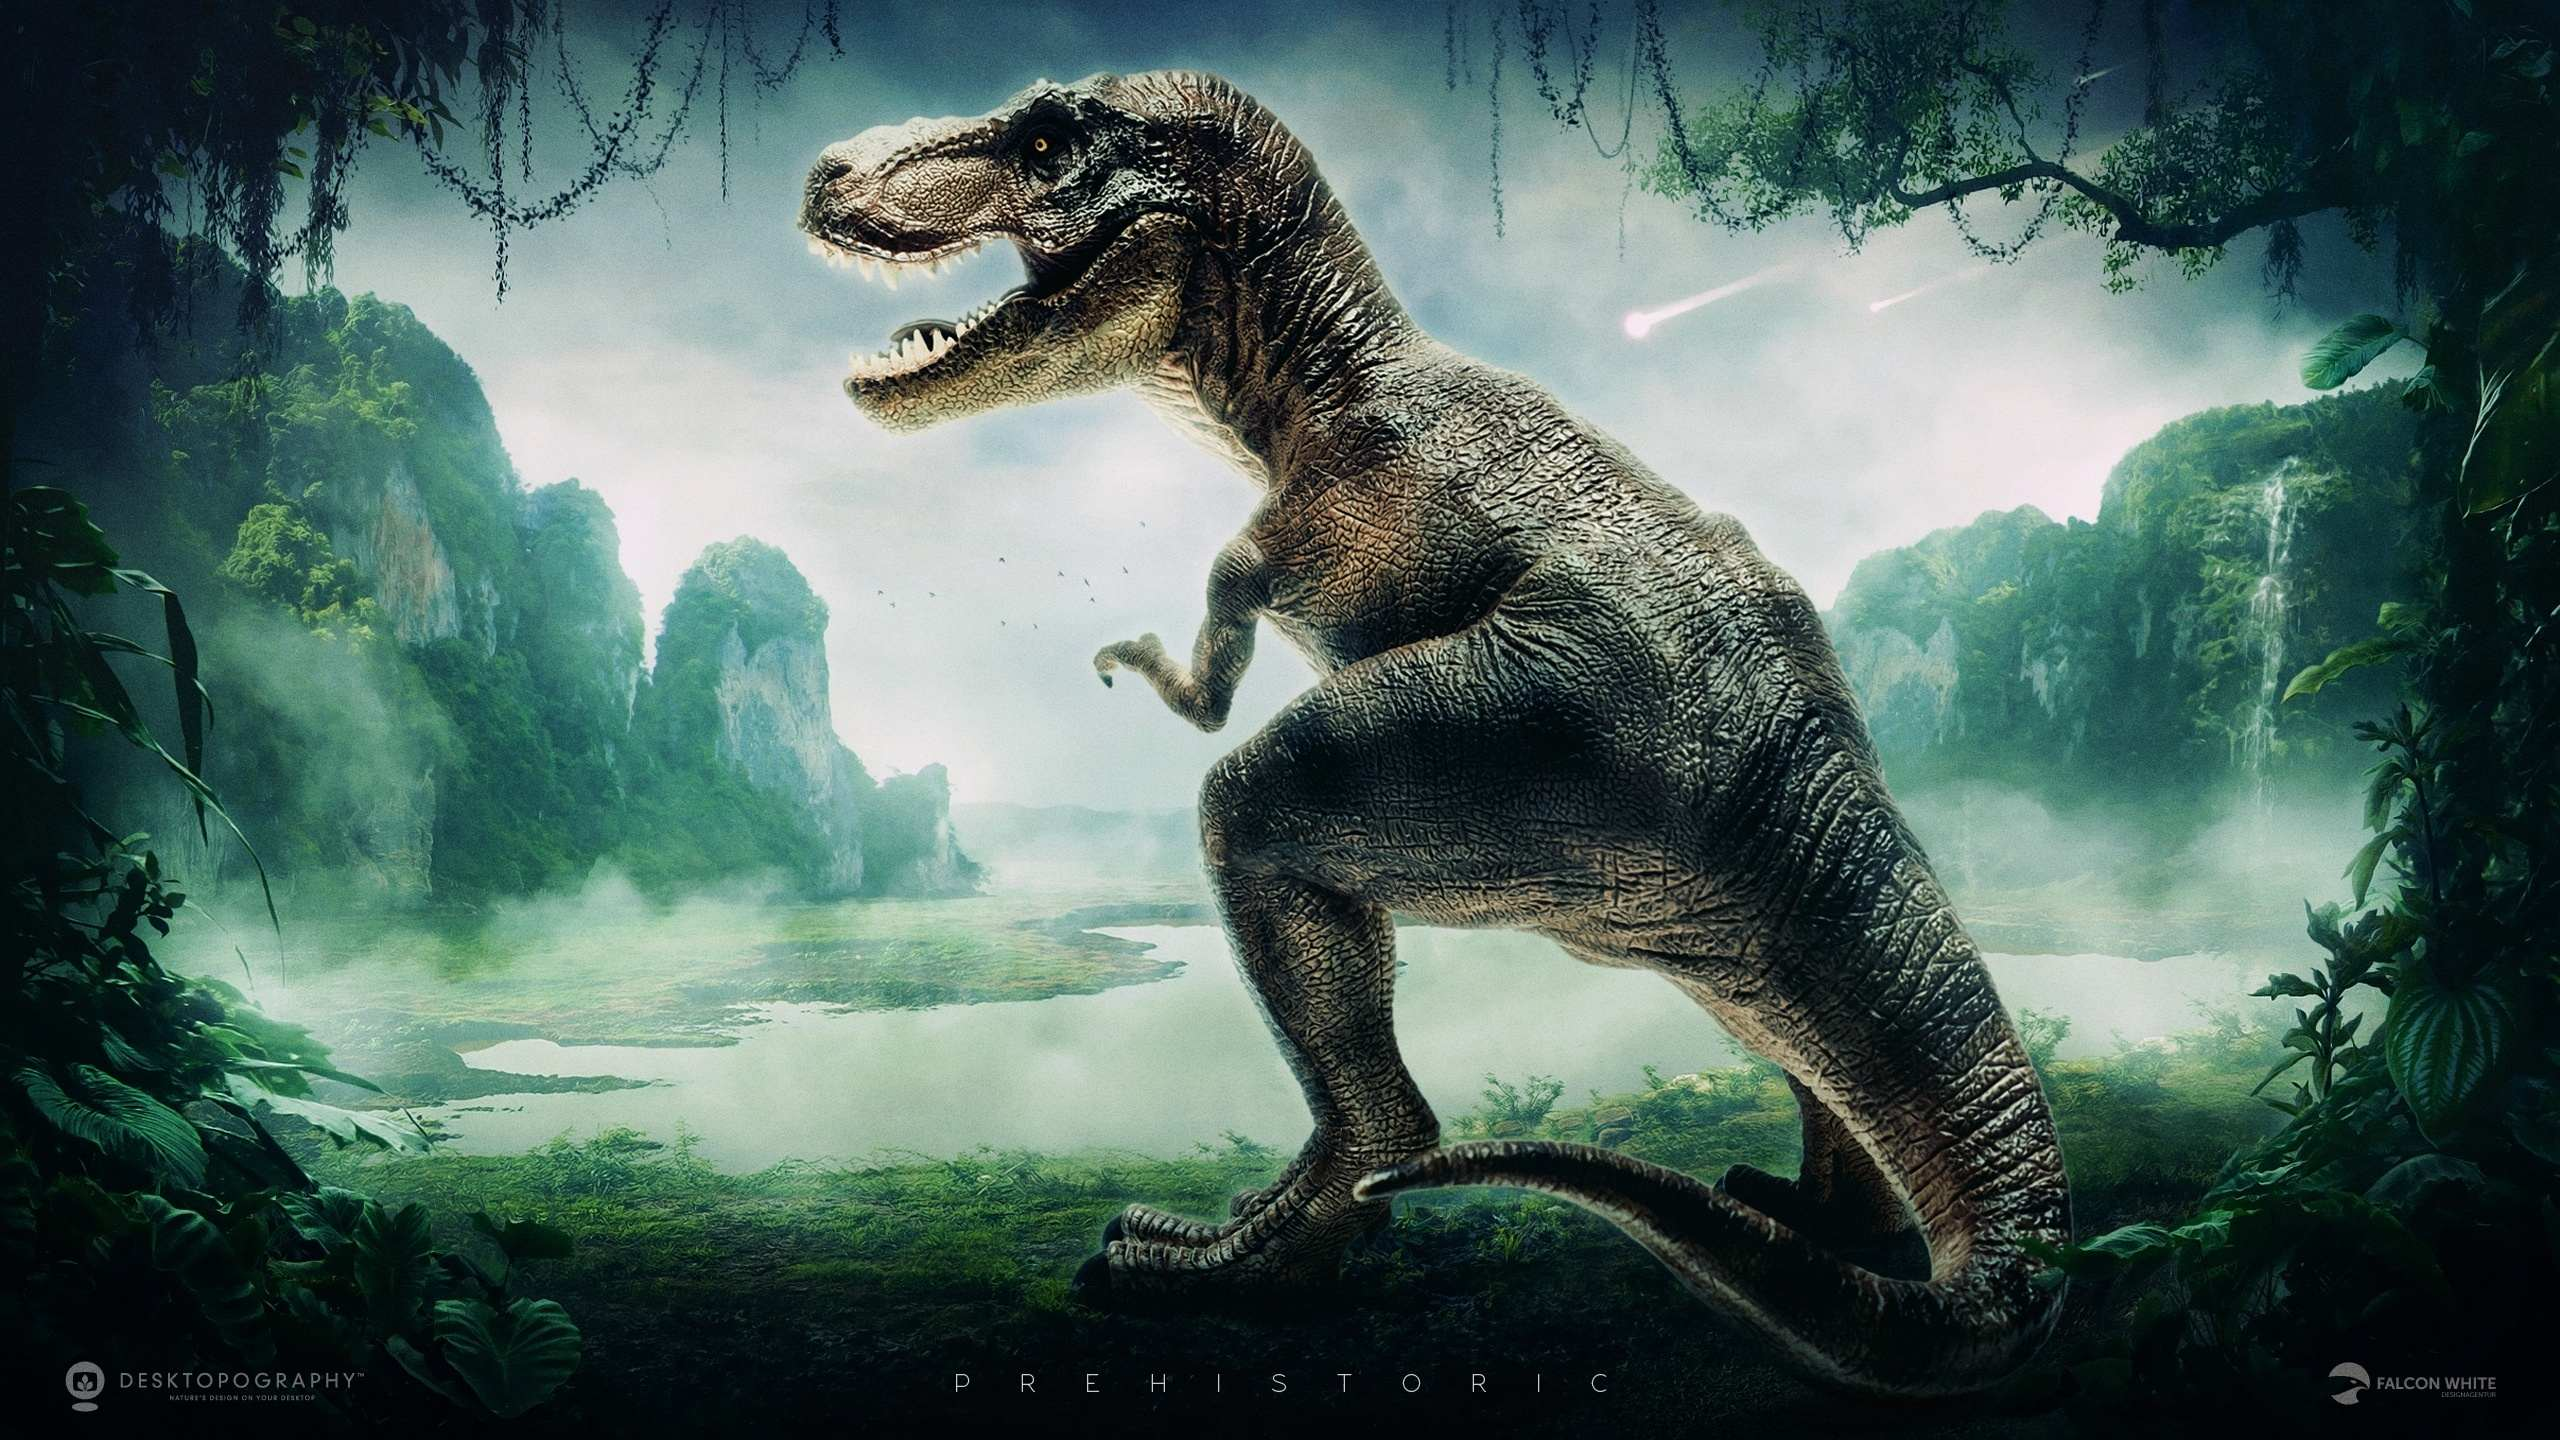 T Rex Dinosaur Wallpaper and Tyrannosaurus Rex Wallpapers 2560x1440